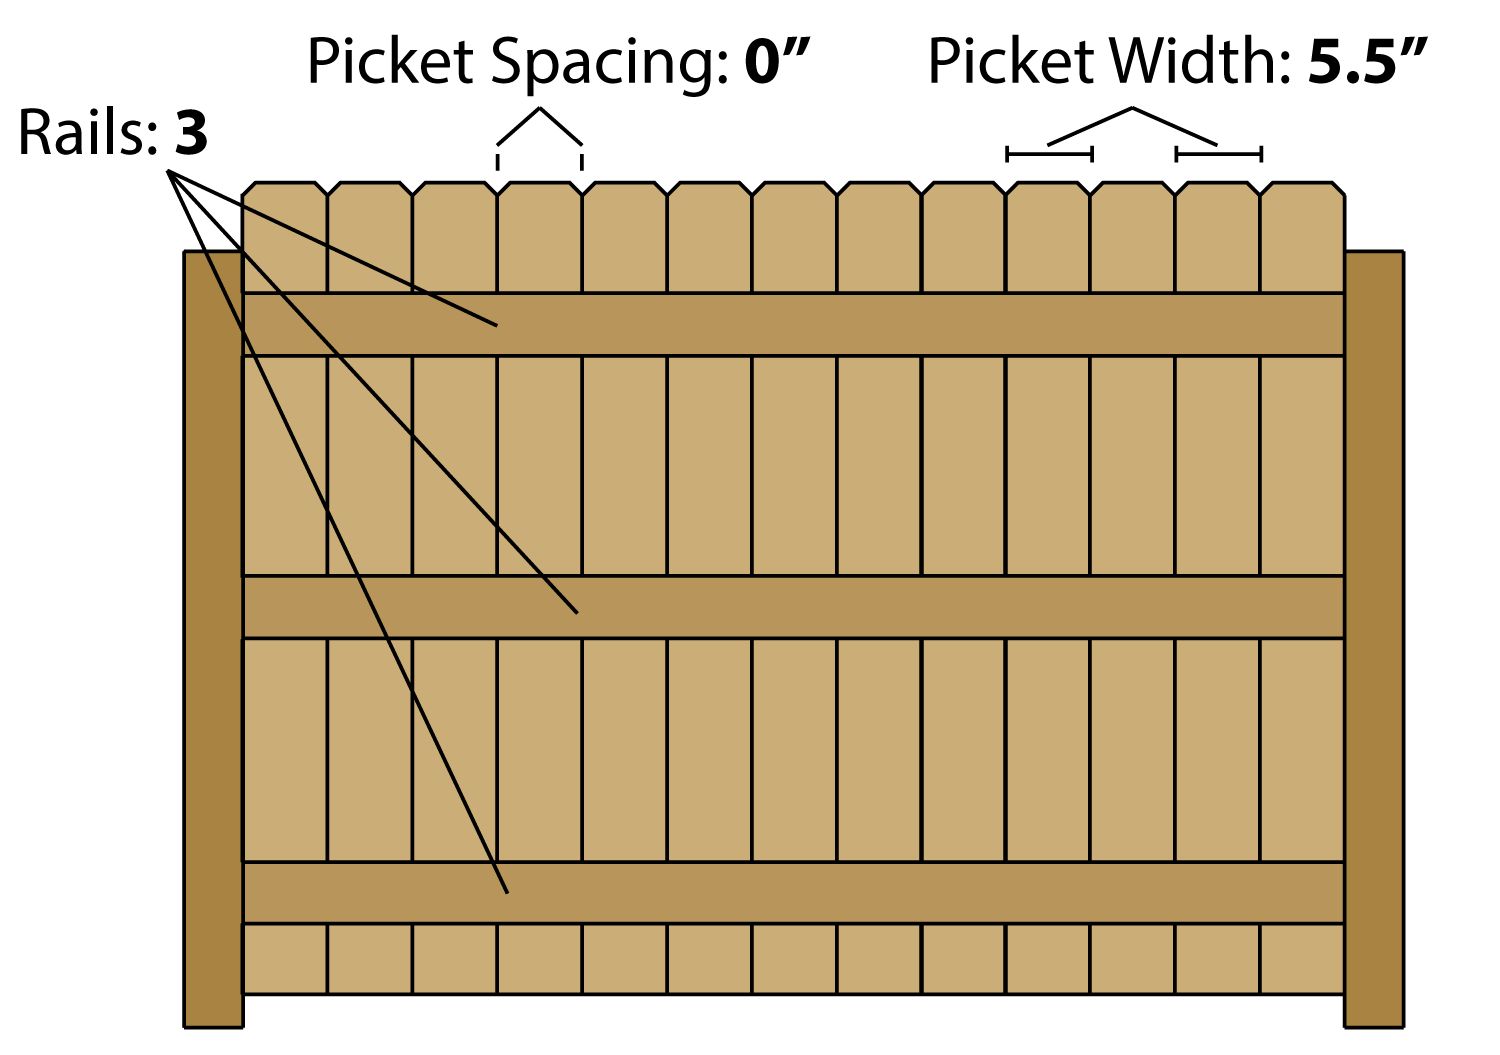 Estimate the lumber needed to build a solid wood fence